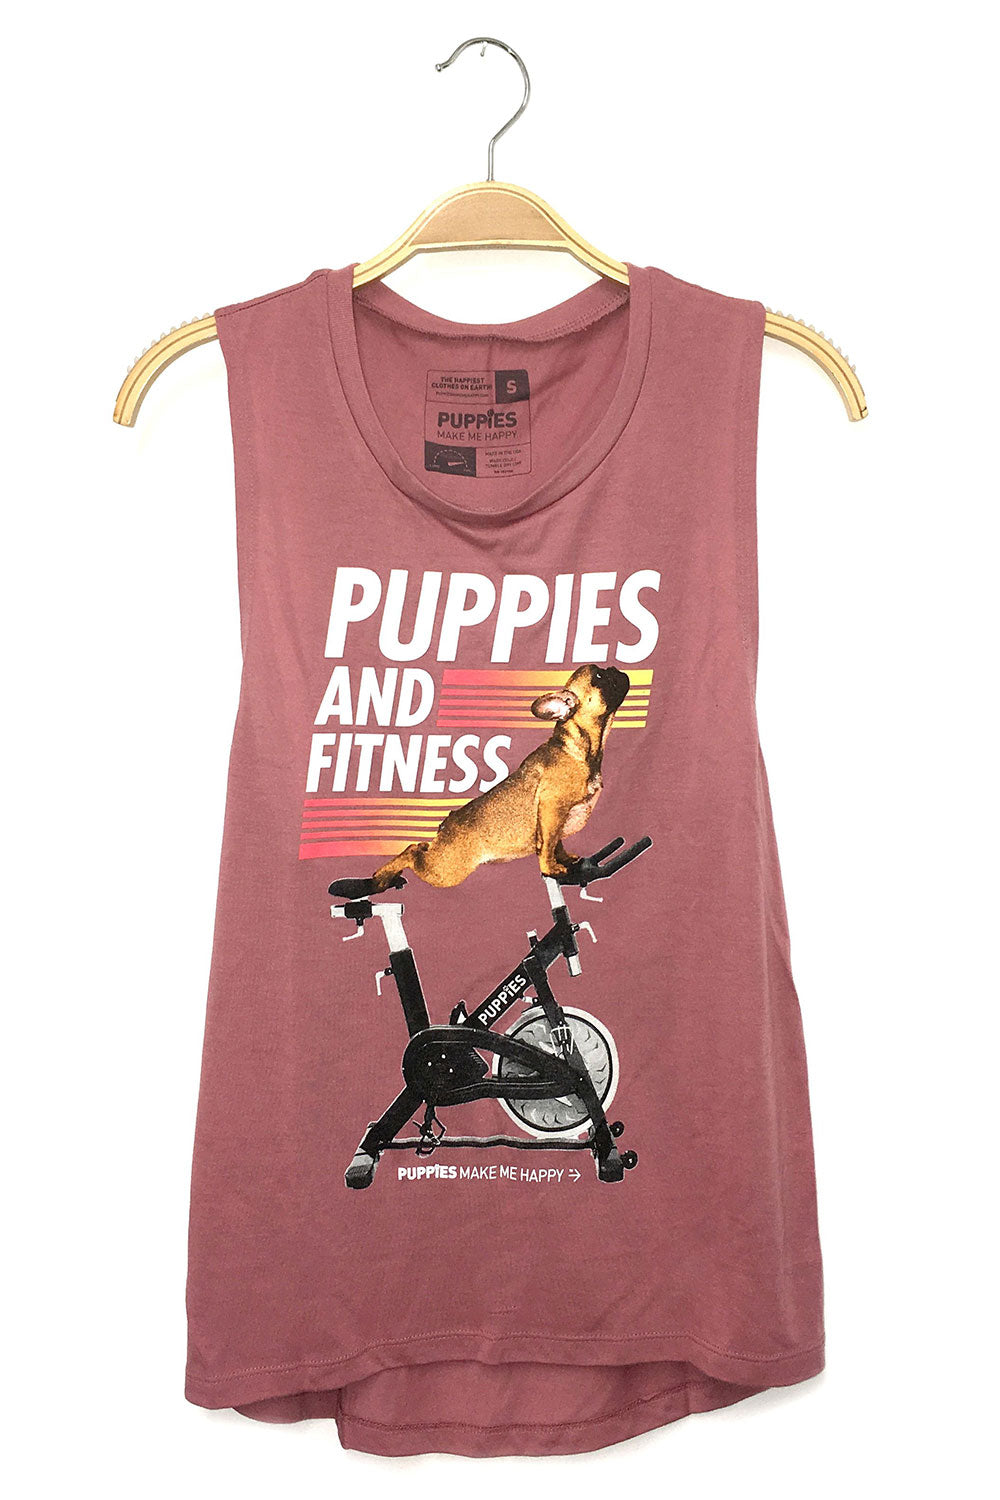 Puppies Make Me Happy Puppies & Fitness Muscle Tank - Sculptique